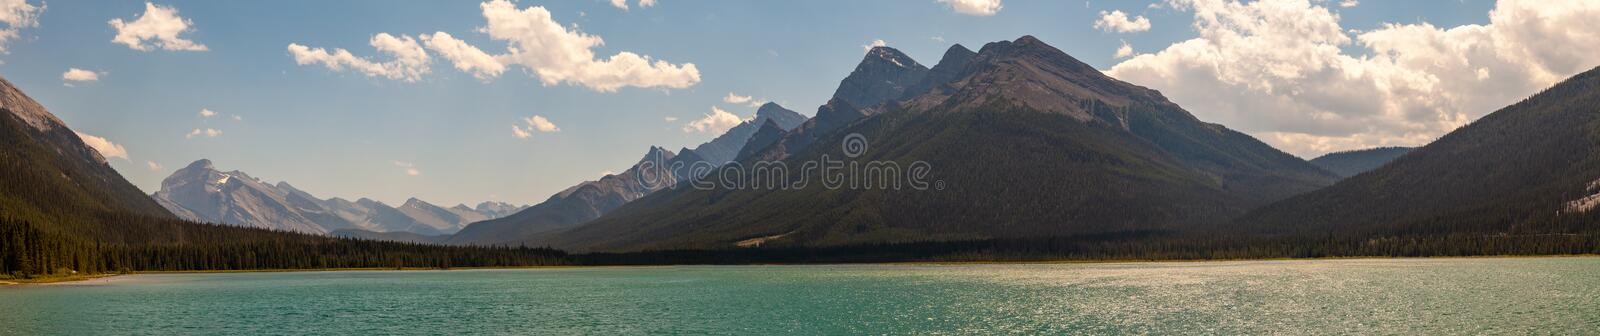 Goat Pond in Kananakis Country near Canmore Alberta. Canada royalty free stock photography